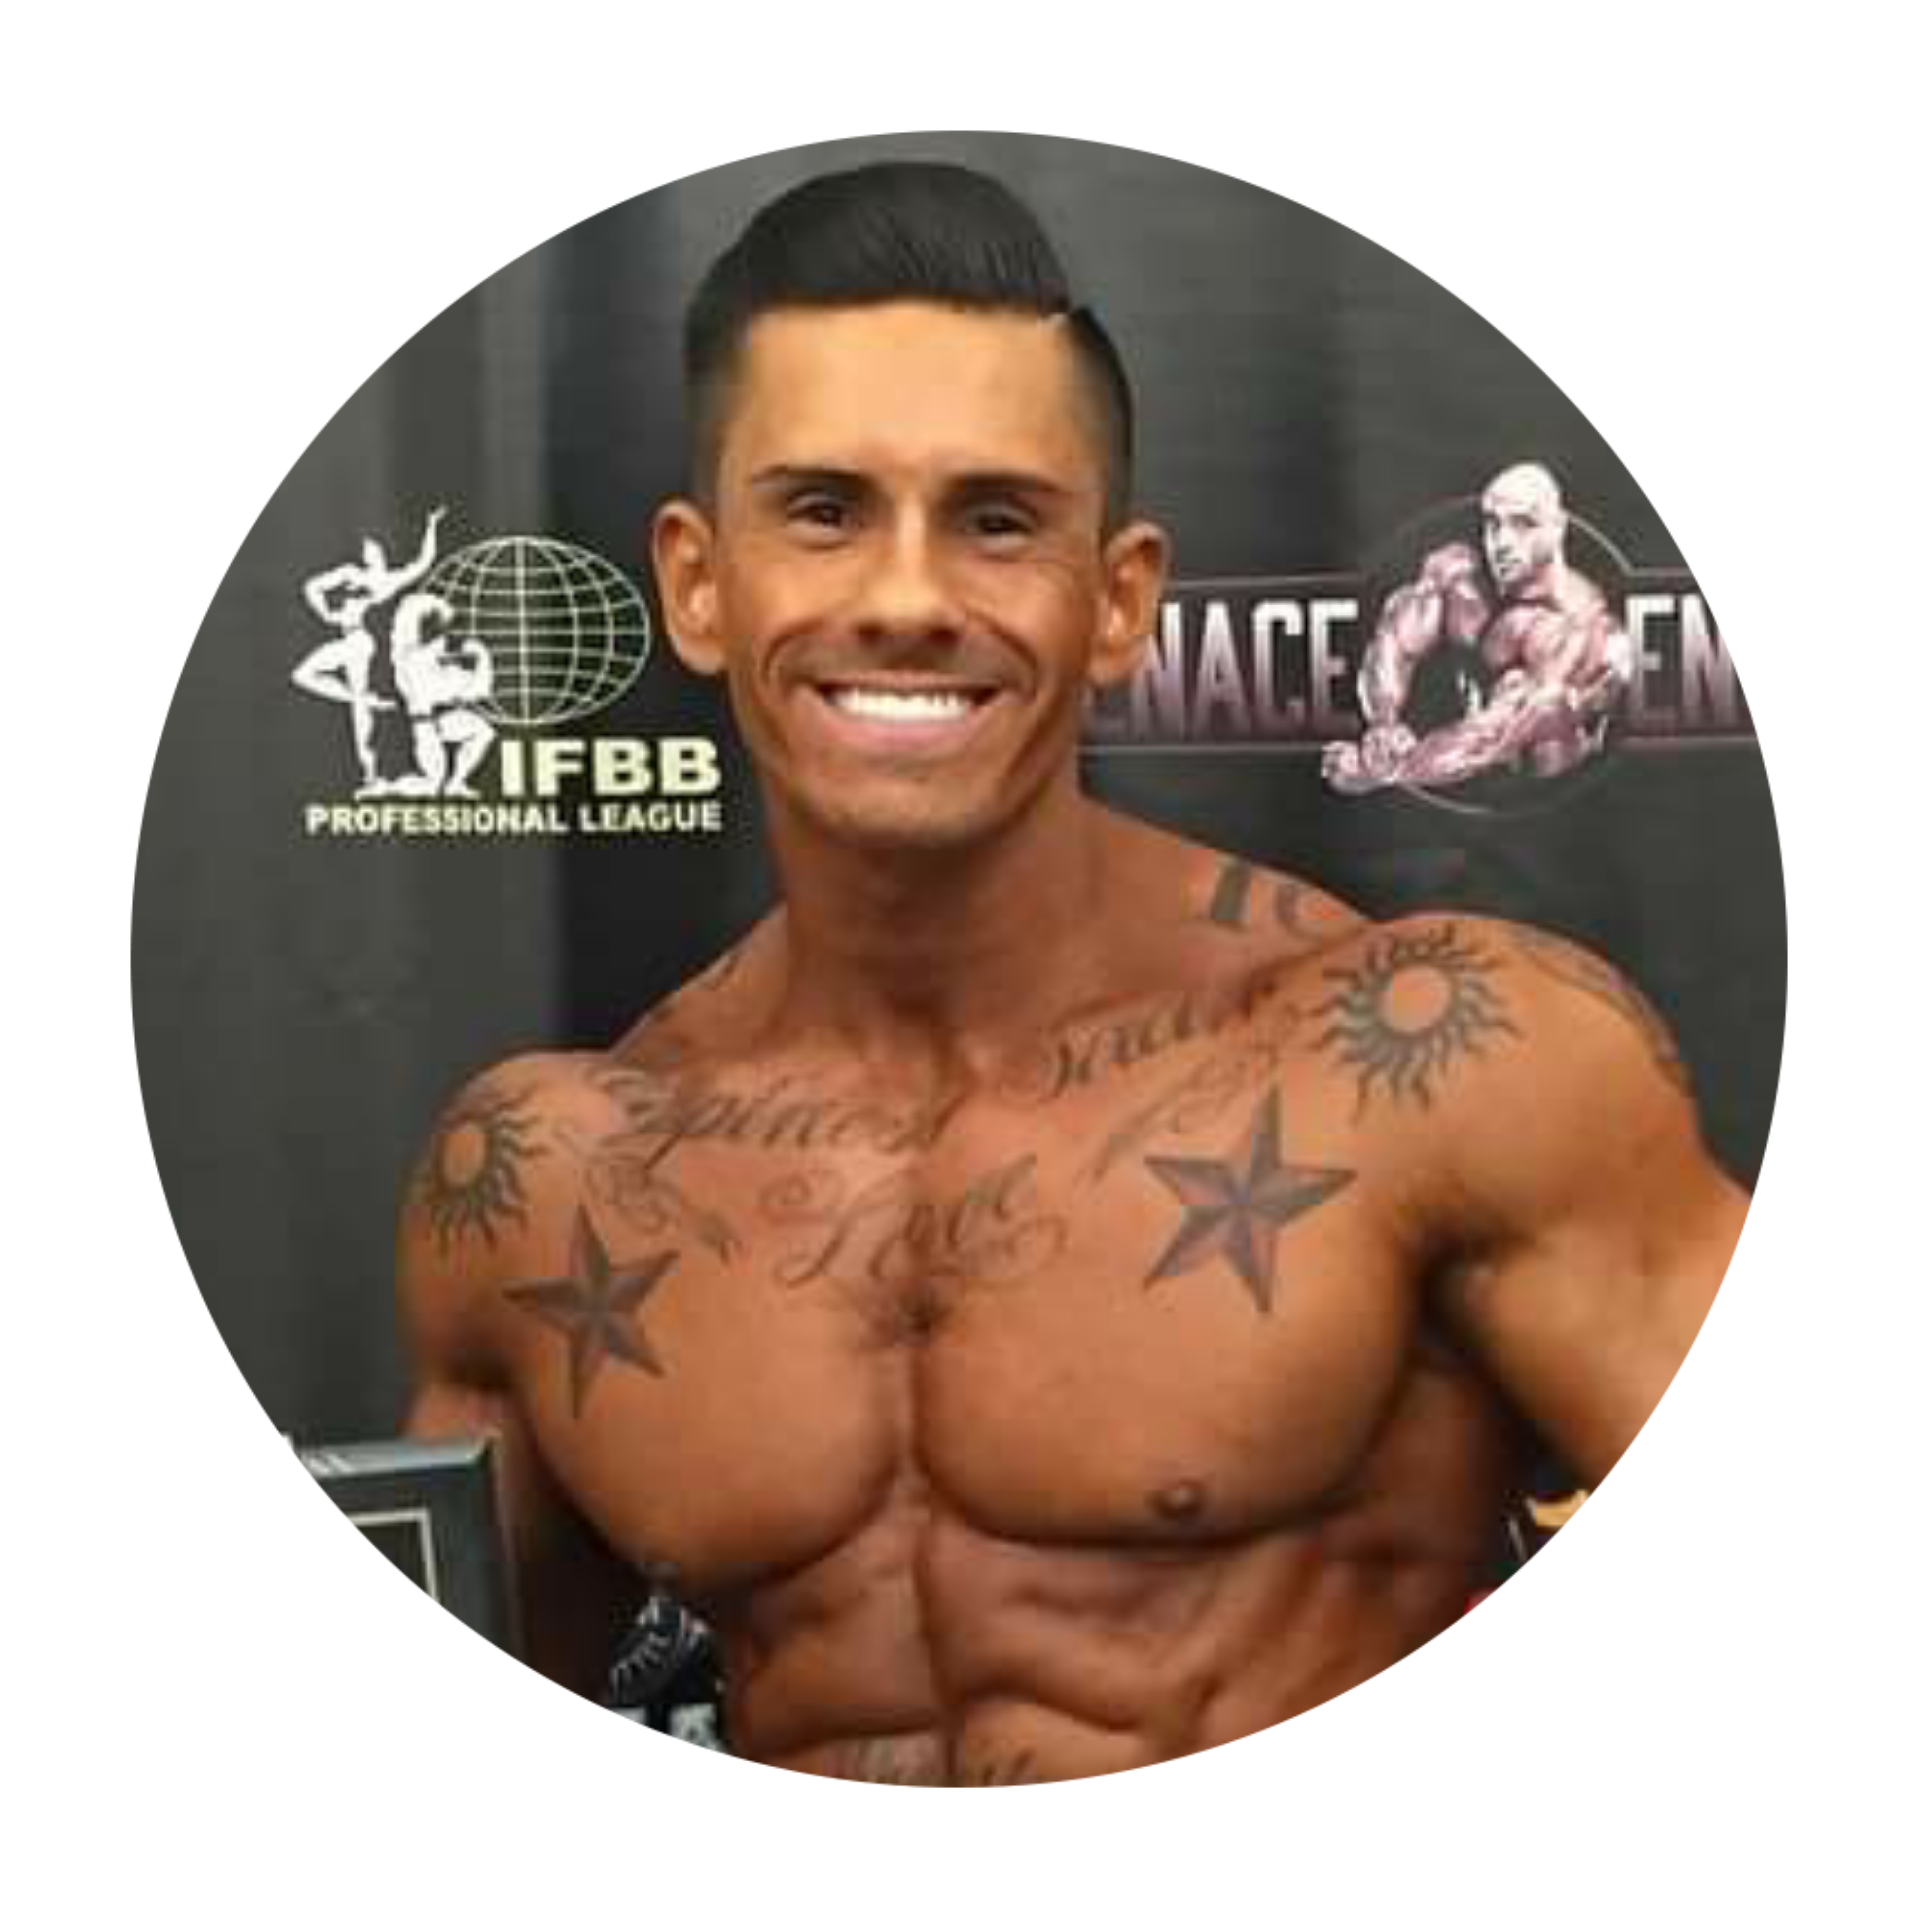 I've always been into self betterment , and my journey has become more mental and spiritual versus physical. The Human Compass was amazing for me because it caused me go much deeper mentally, and allowed me to learn via real life daily. I highly recommend it to anyone into self growth.  Kelly Schmidt, Owner  | AIP Fitness |  IFBB Pro